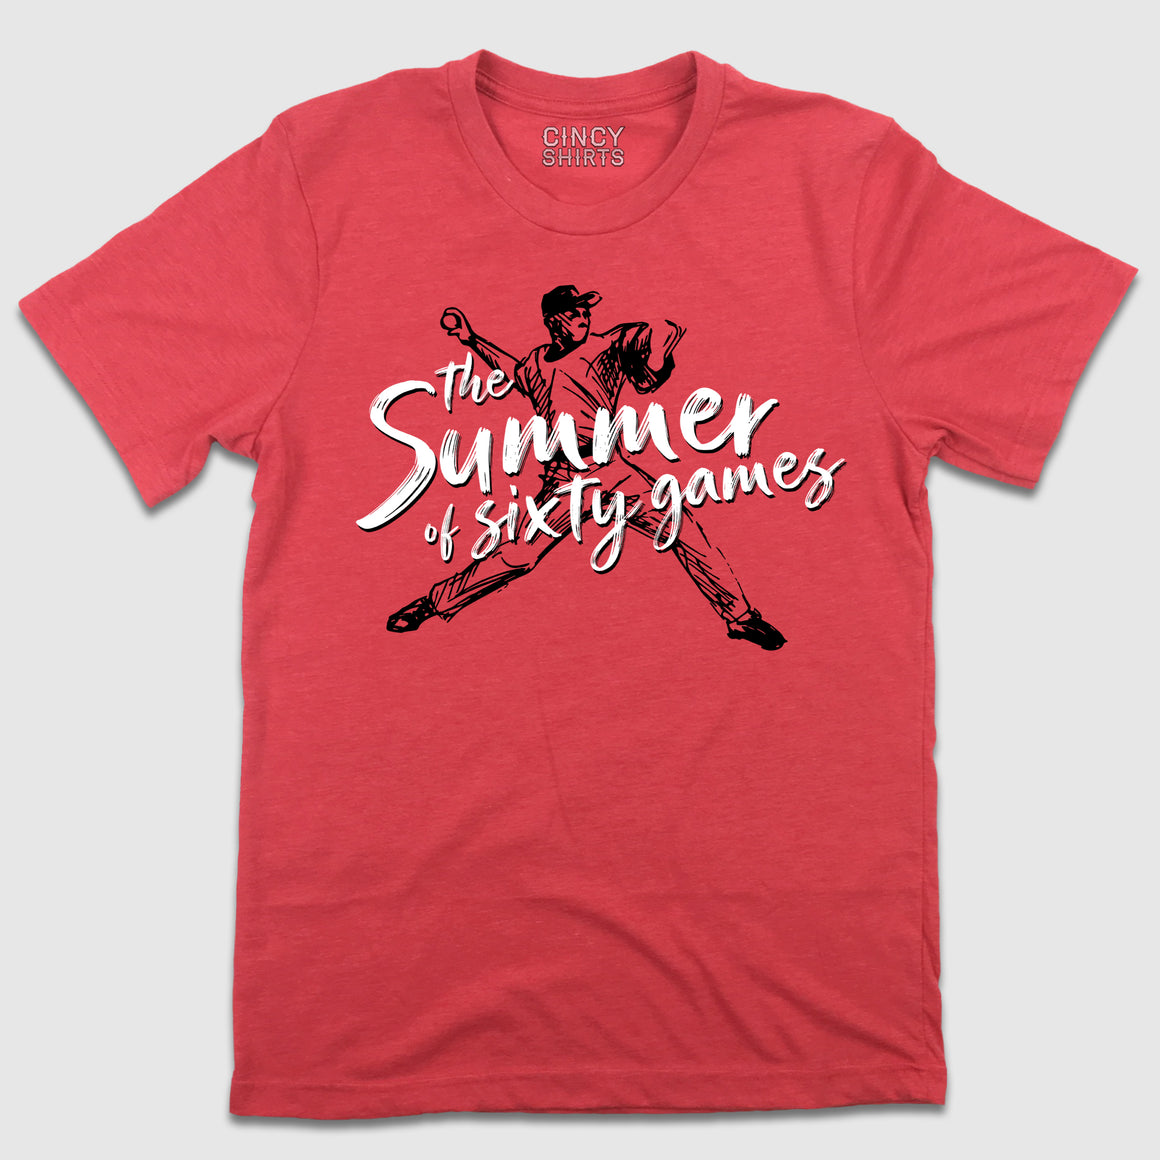 The Summer of 60 Games - Cincy Shirts